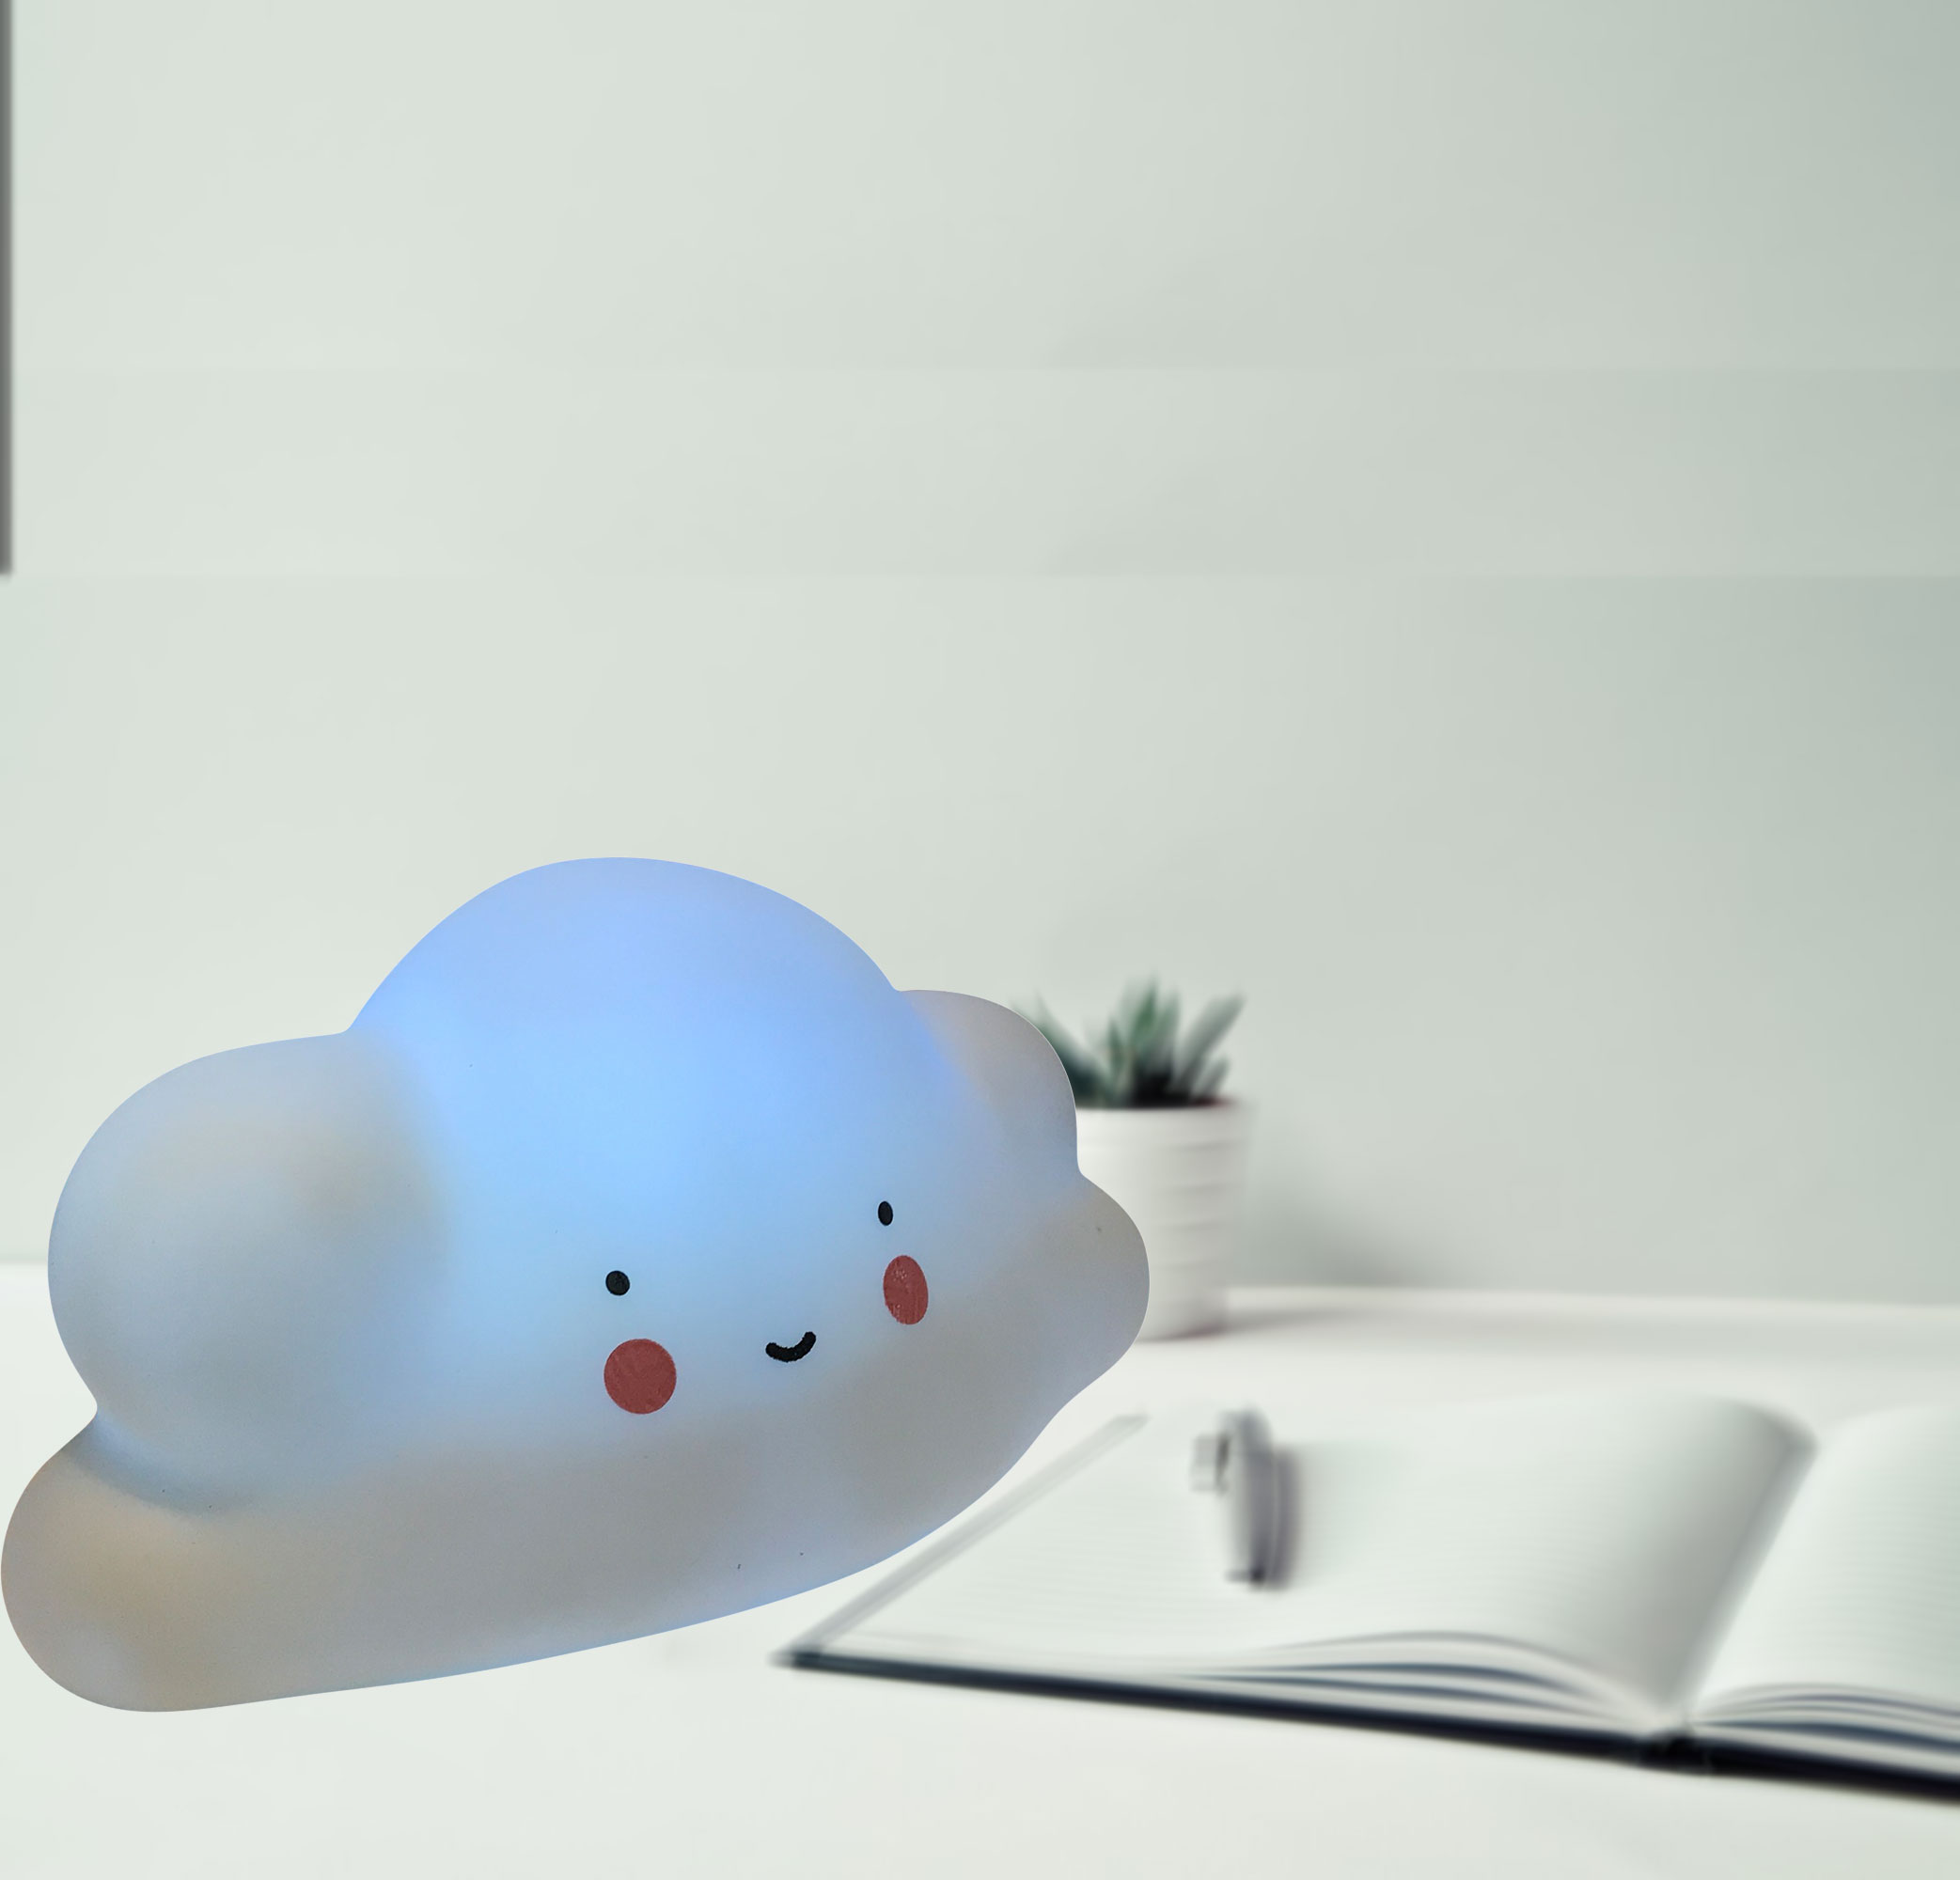 Soft Cloud Light (White). It comes with 3 Button Batteries, on/off switch;Product Size: 3.25x6x3.25. Squeezable fun light for any kid and room